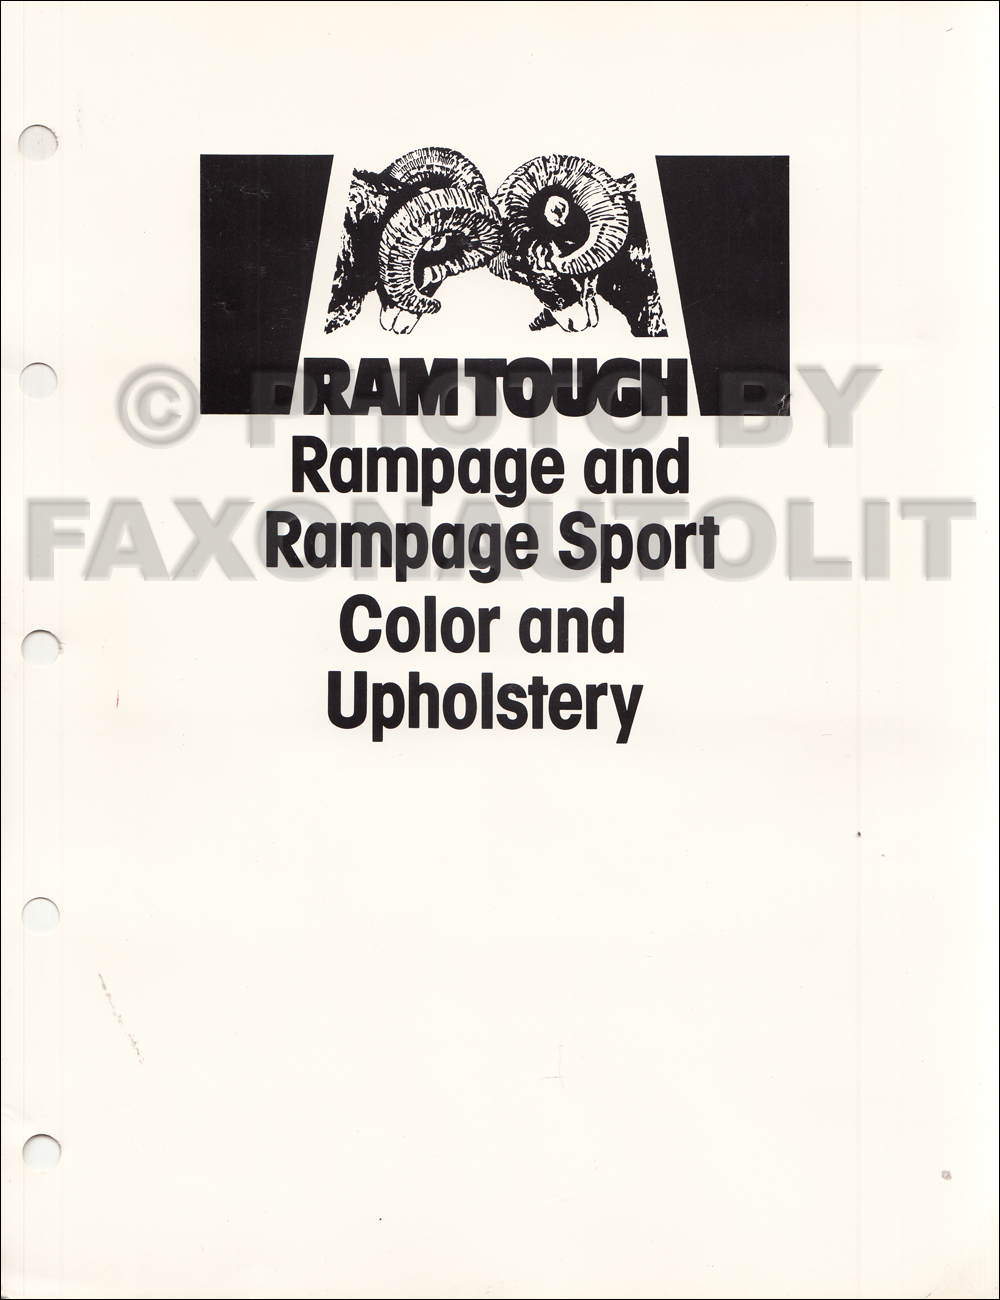 1983 Dodge Rampage Color & Upholstery Dealer Album Original